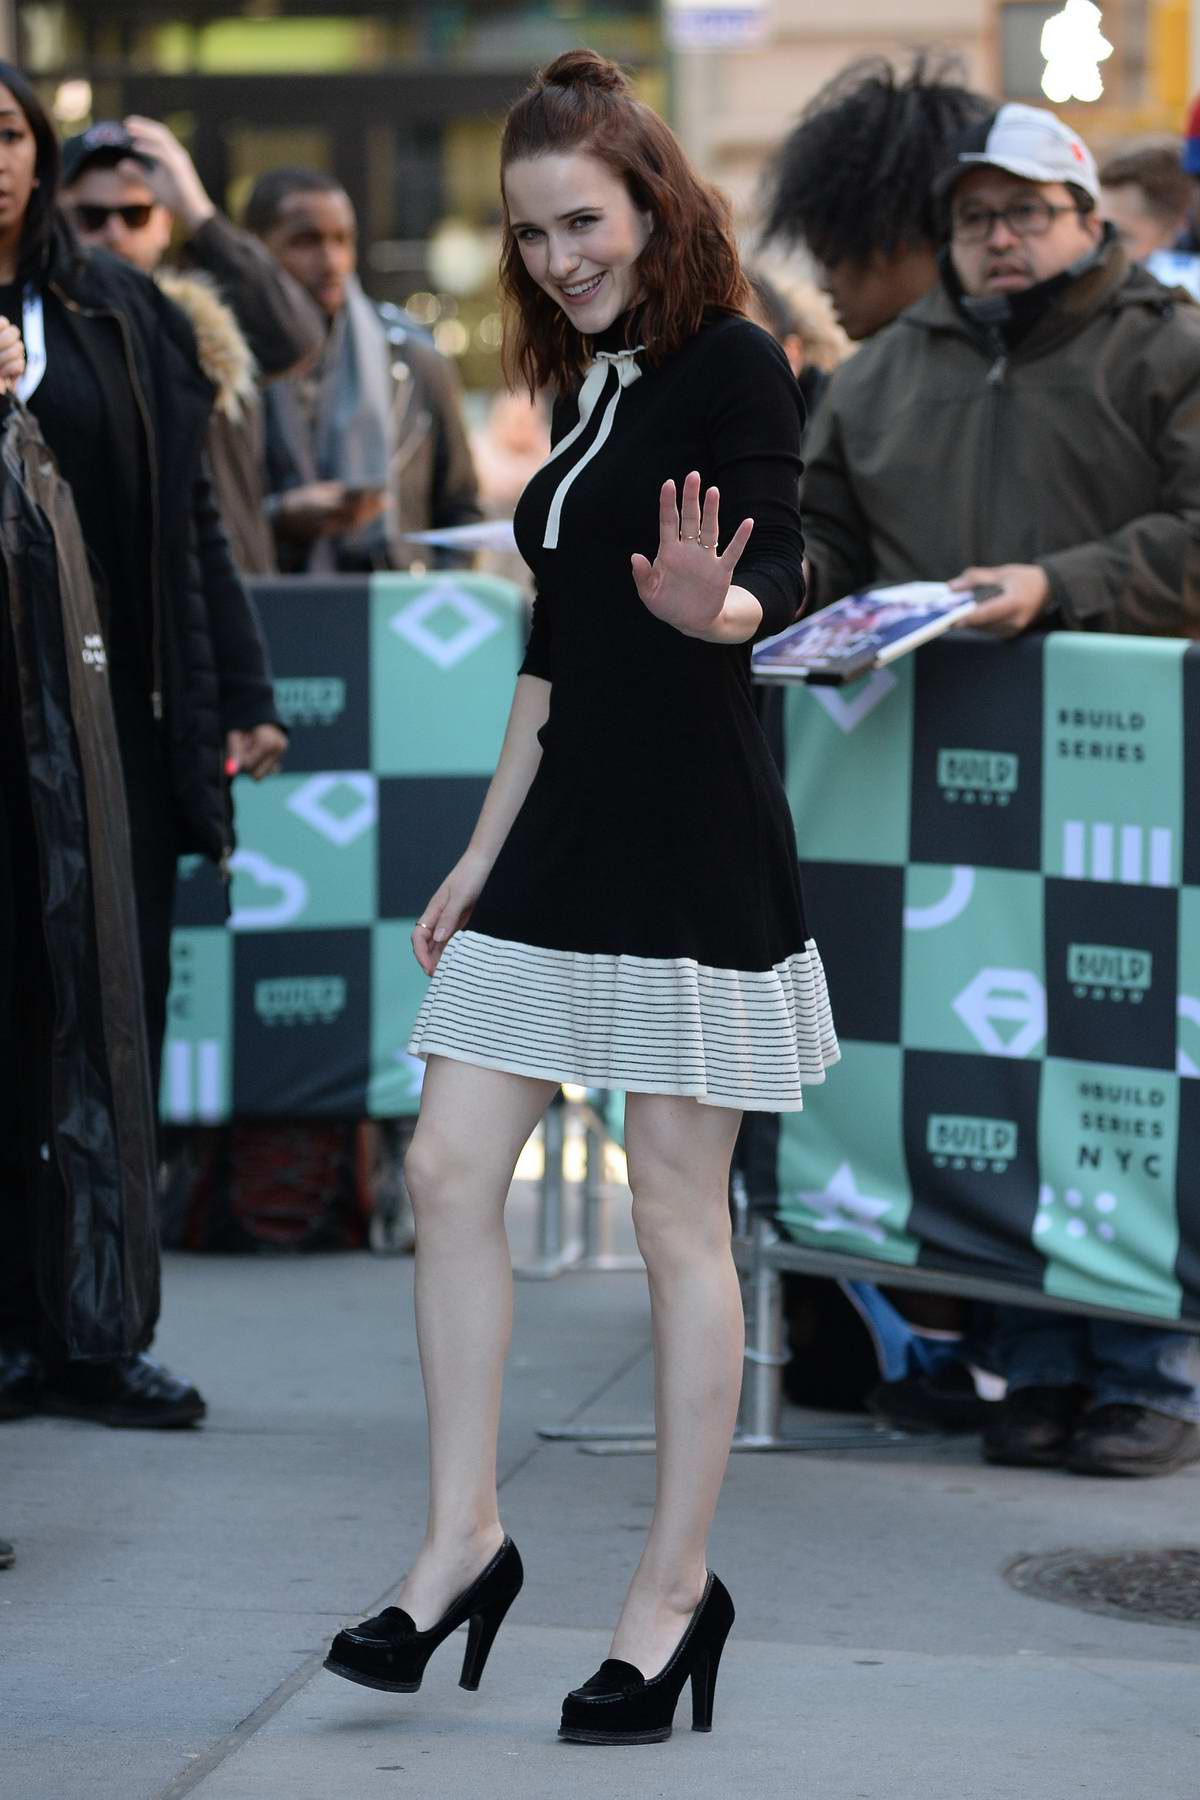 Rachel Brosnahan made an appearance at the AOL Build Series in New York